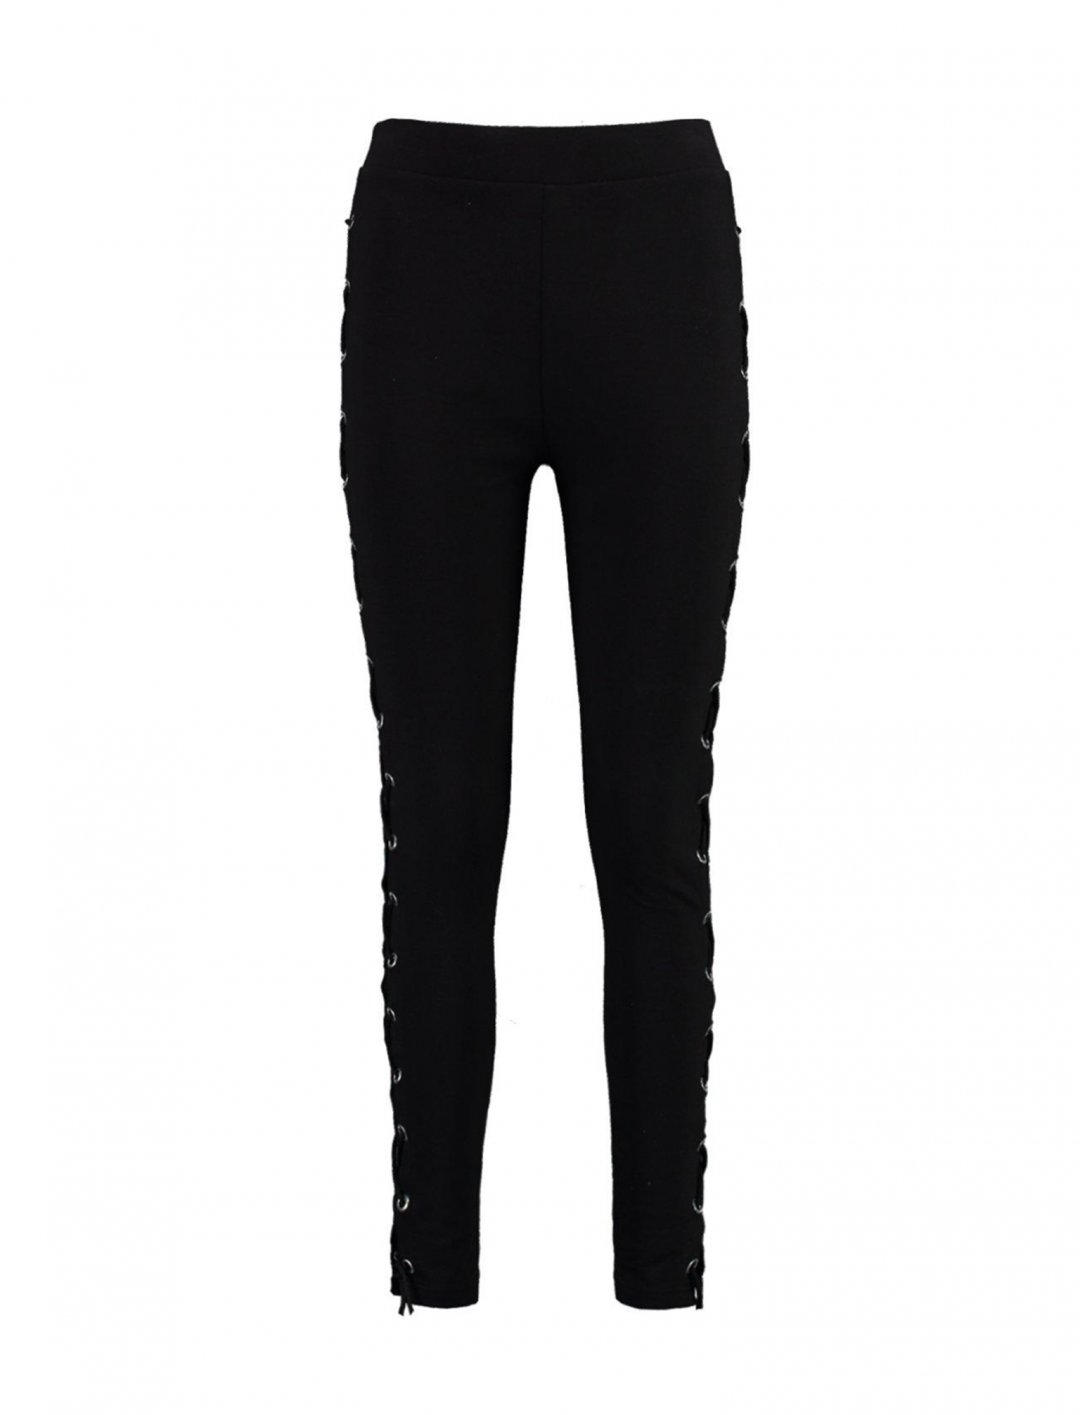 "Boohoo Lace Up Side Leggings {""id"":5,""product_section_id"":1,""name"":""Clothing"",""order"":5} Boohoo"